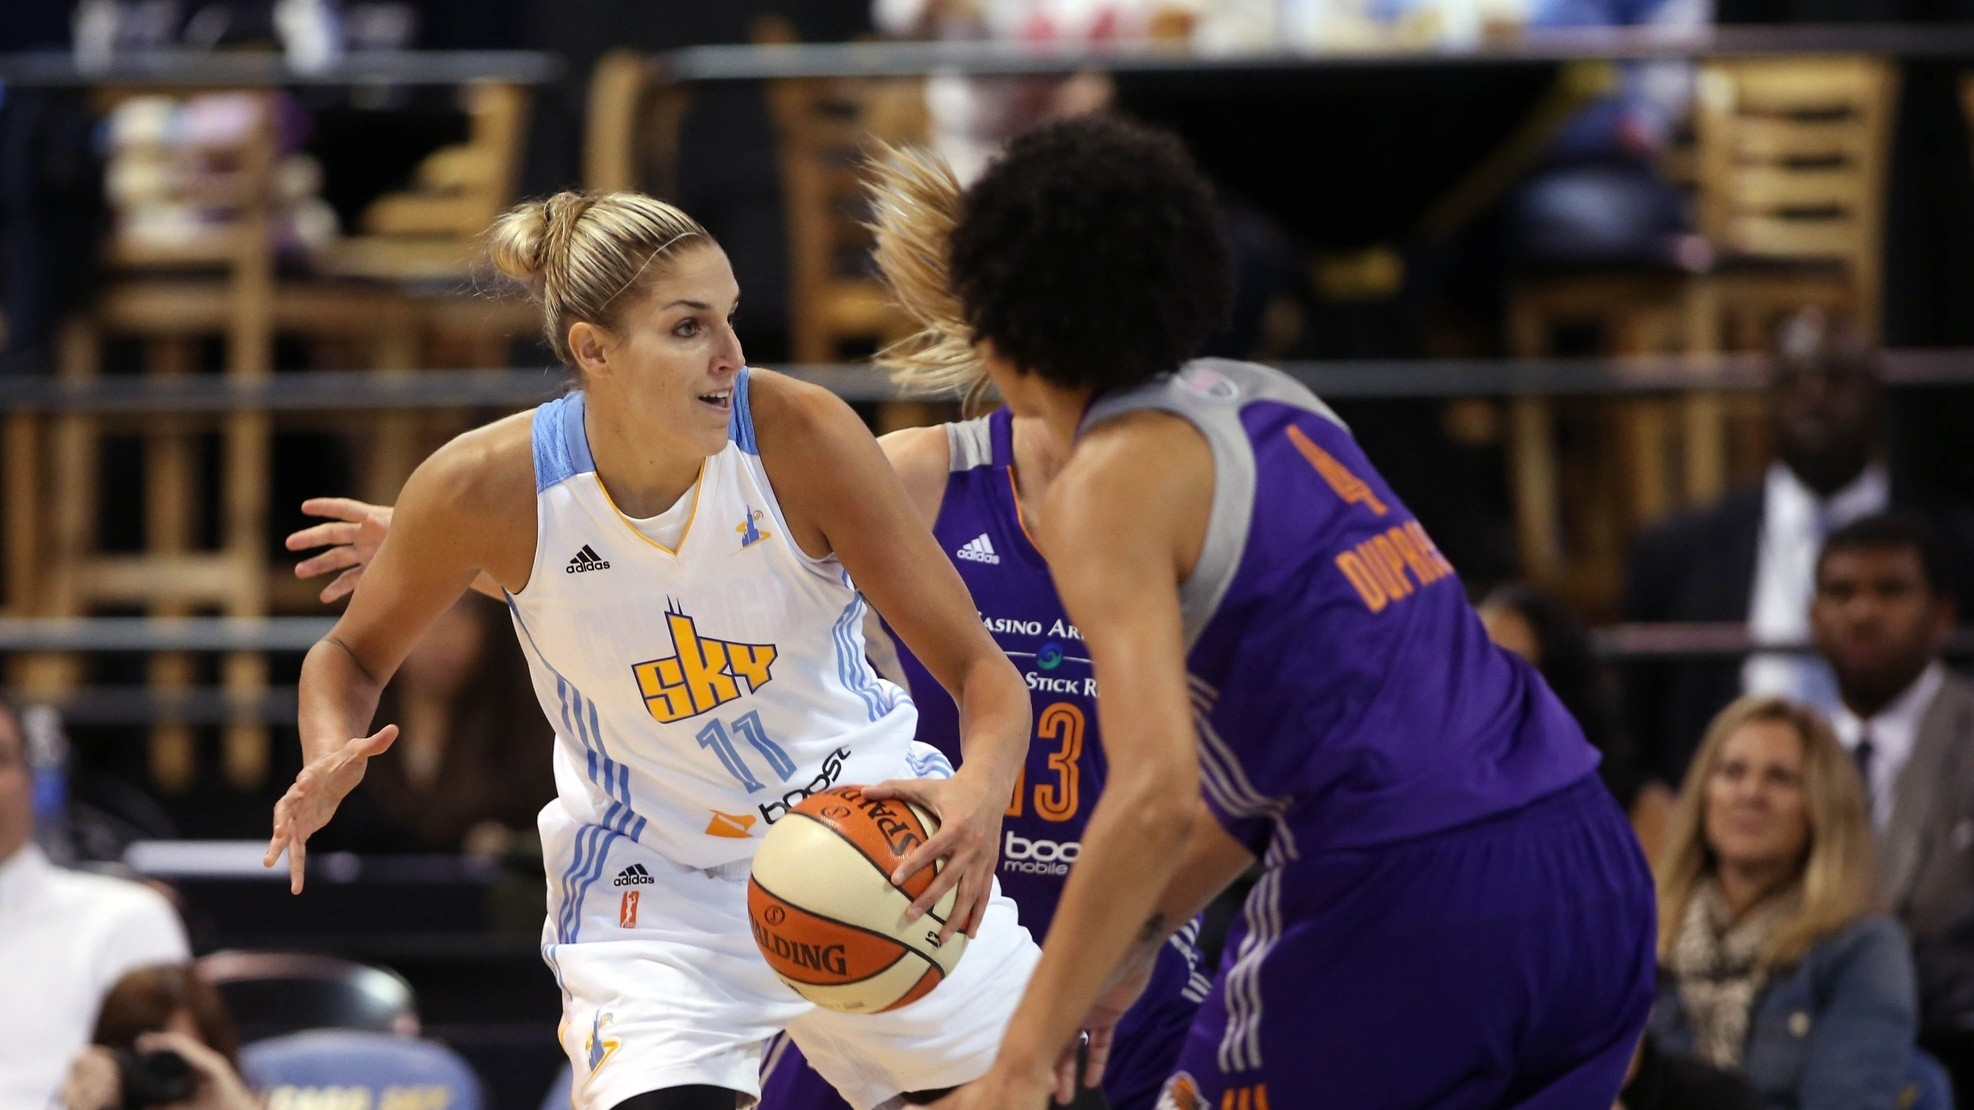 Elena Delle Donne Says She's Ready to Move—and to Sit Out 2017 if Necessary